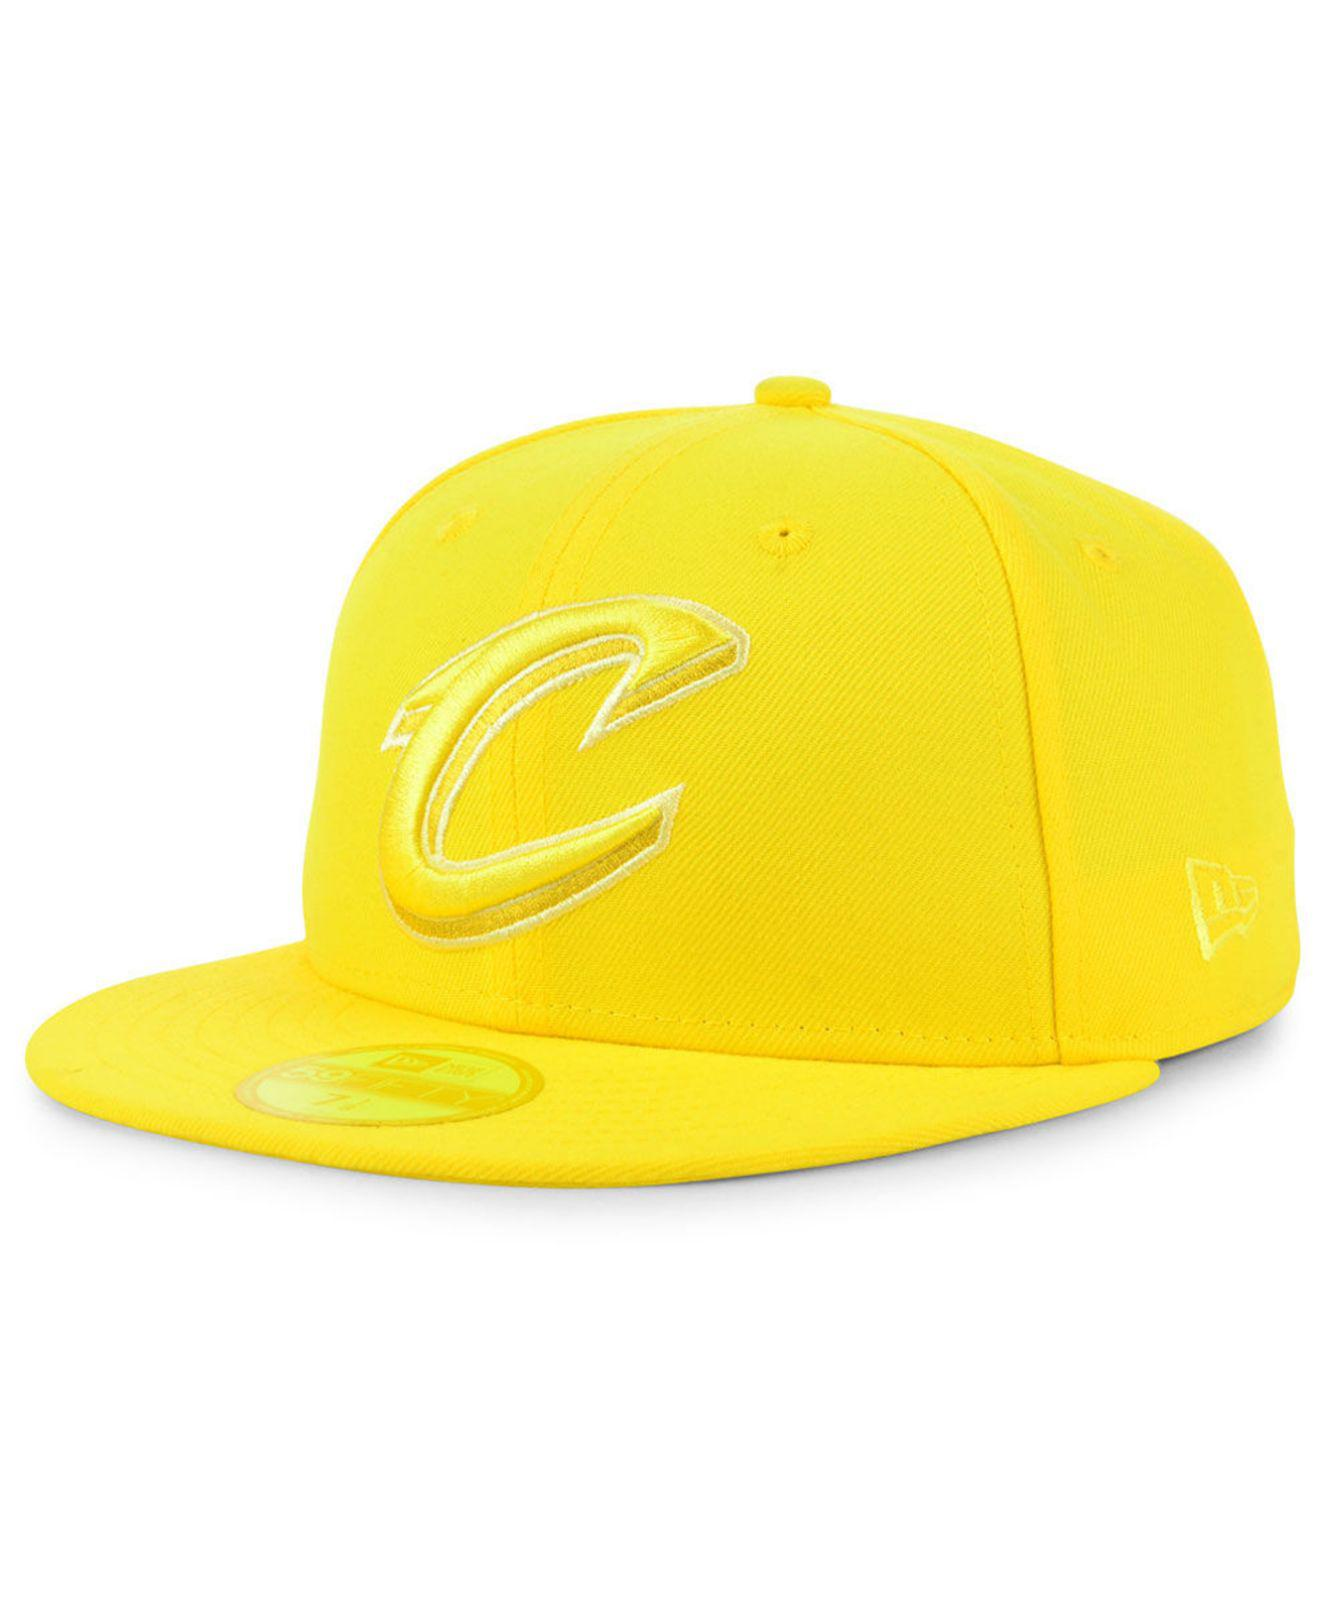 separation shoes 3a7f0 fa59a KTZ. Men s Yellow Cleveland Cavaliers Color Prism Pack 59fifty Fitted Cap